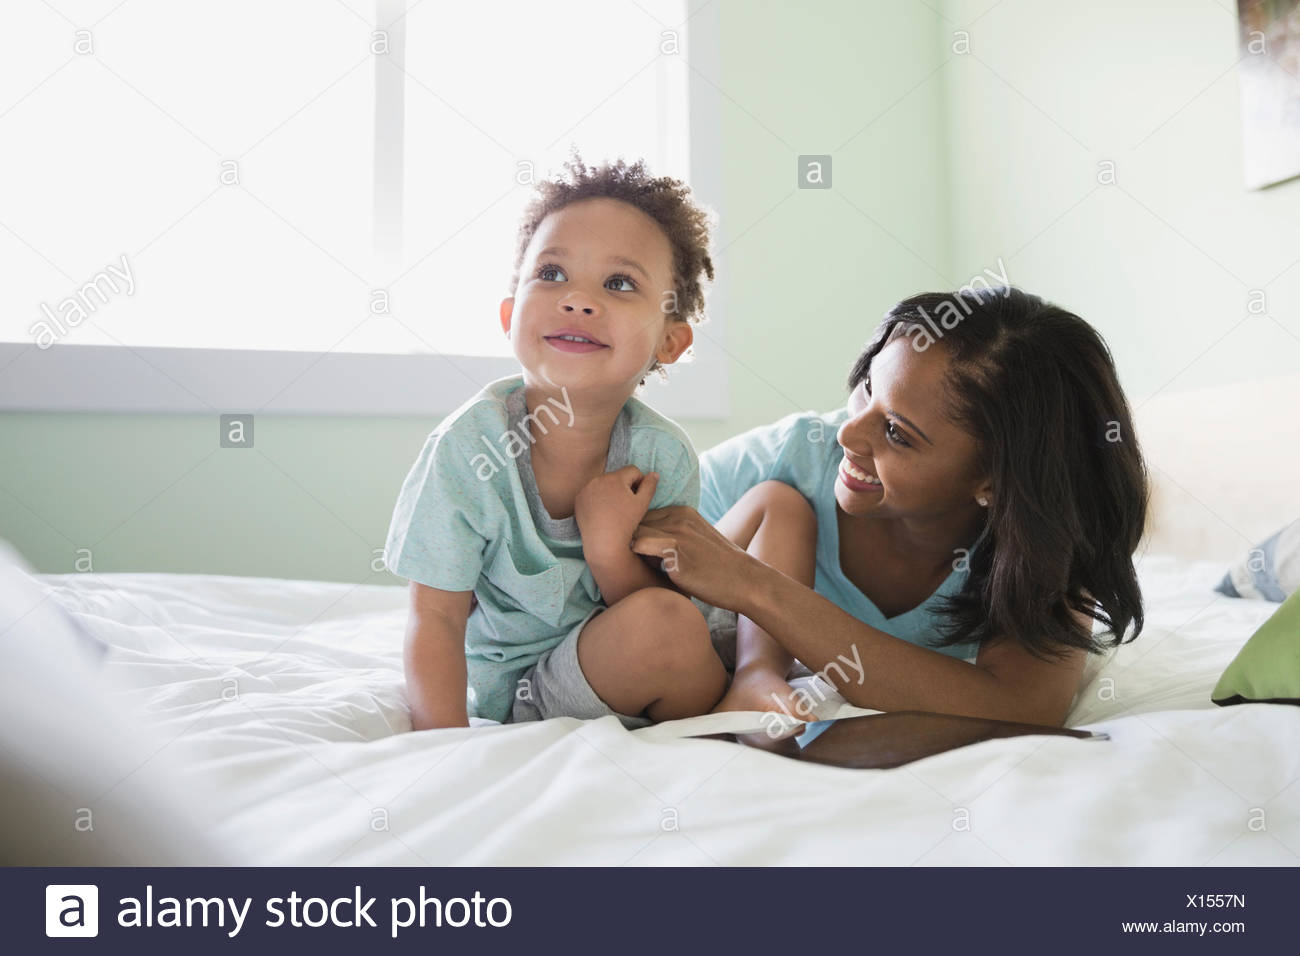 Playful mother with baby on bed at home - Stock Image